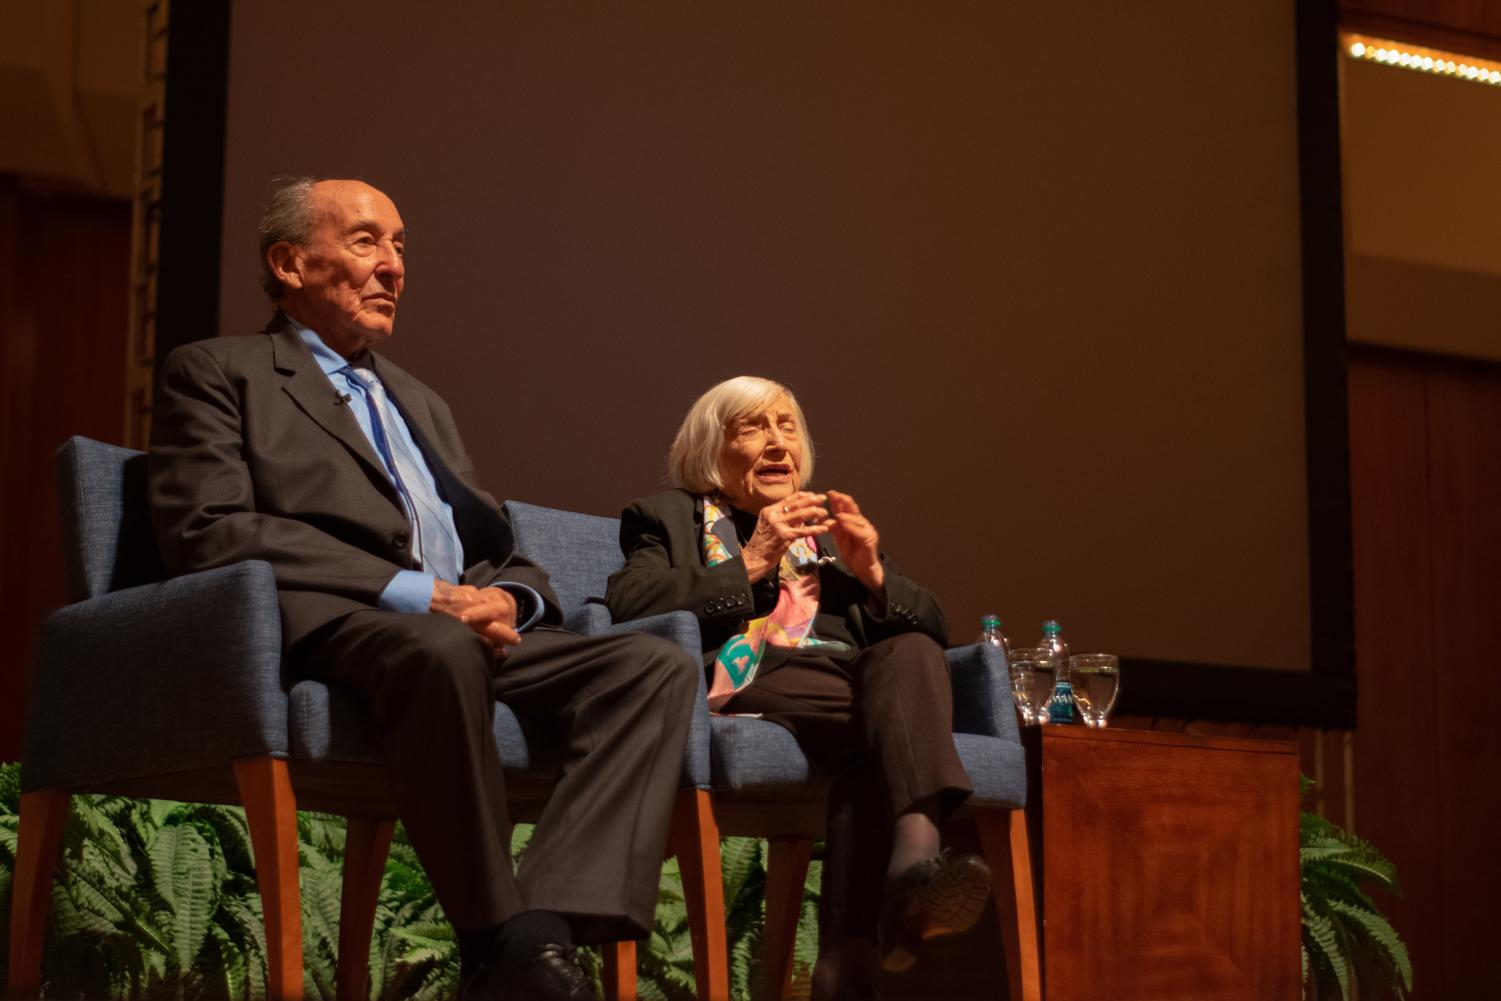 Marthe Cohn (right) in the Great Hall of the Krannert Center for Performing Arts on Feb. 13. She spoke about her autobiography 'Behind Enemy Lines: The True Story of a French Jewish Spy.